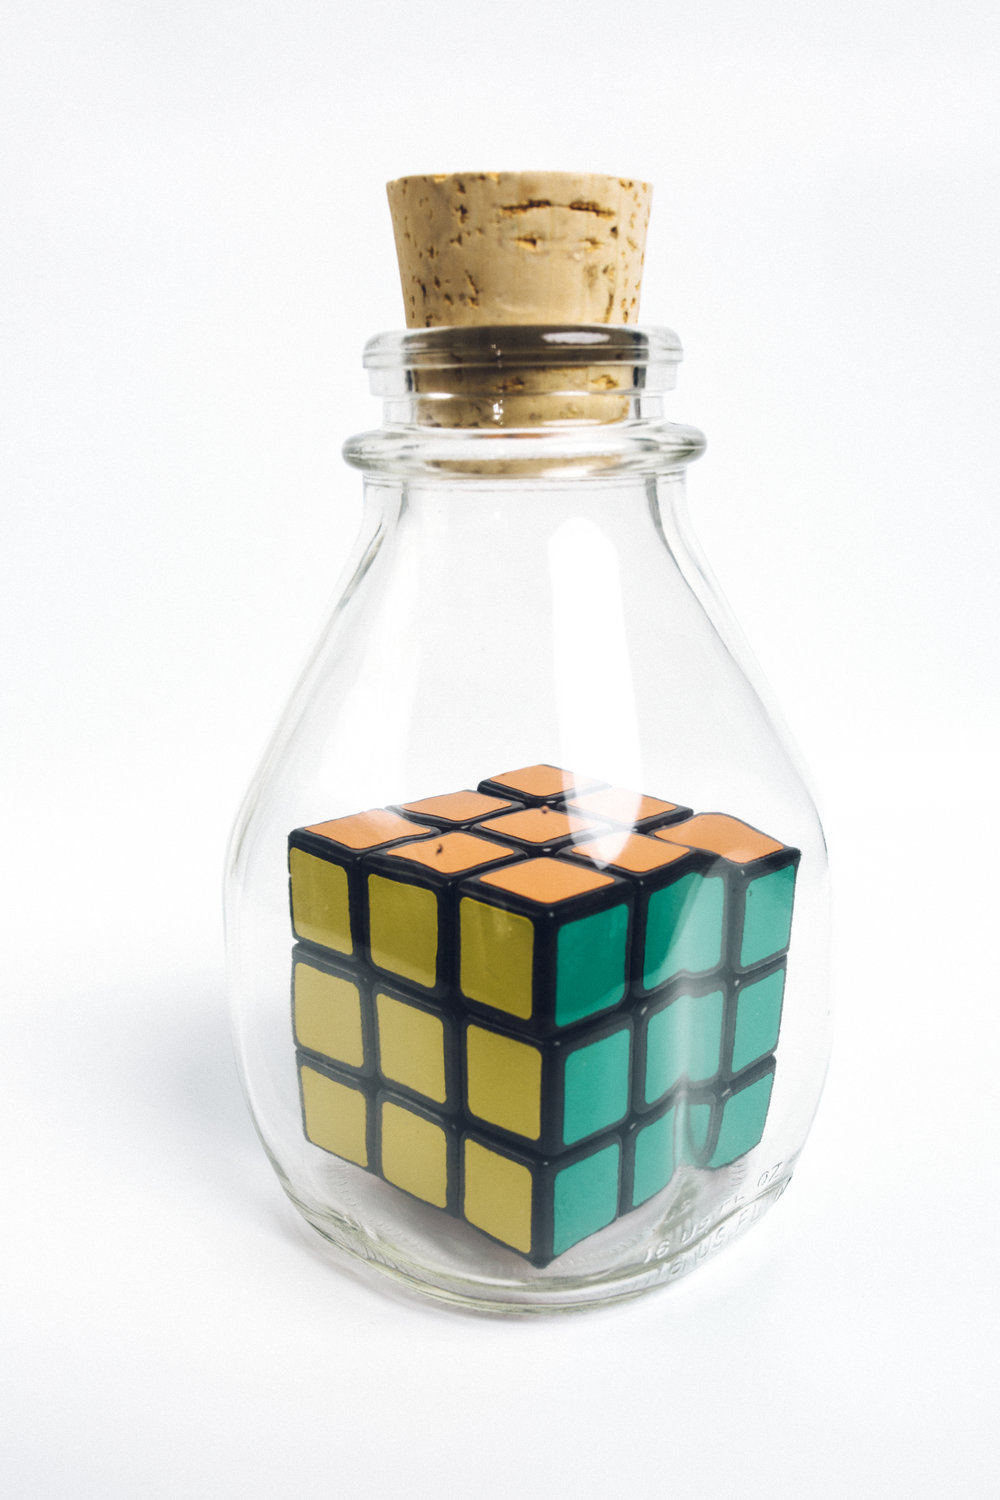 Rubik's Cube in Bottle